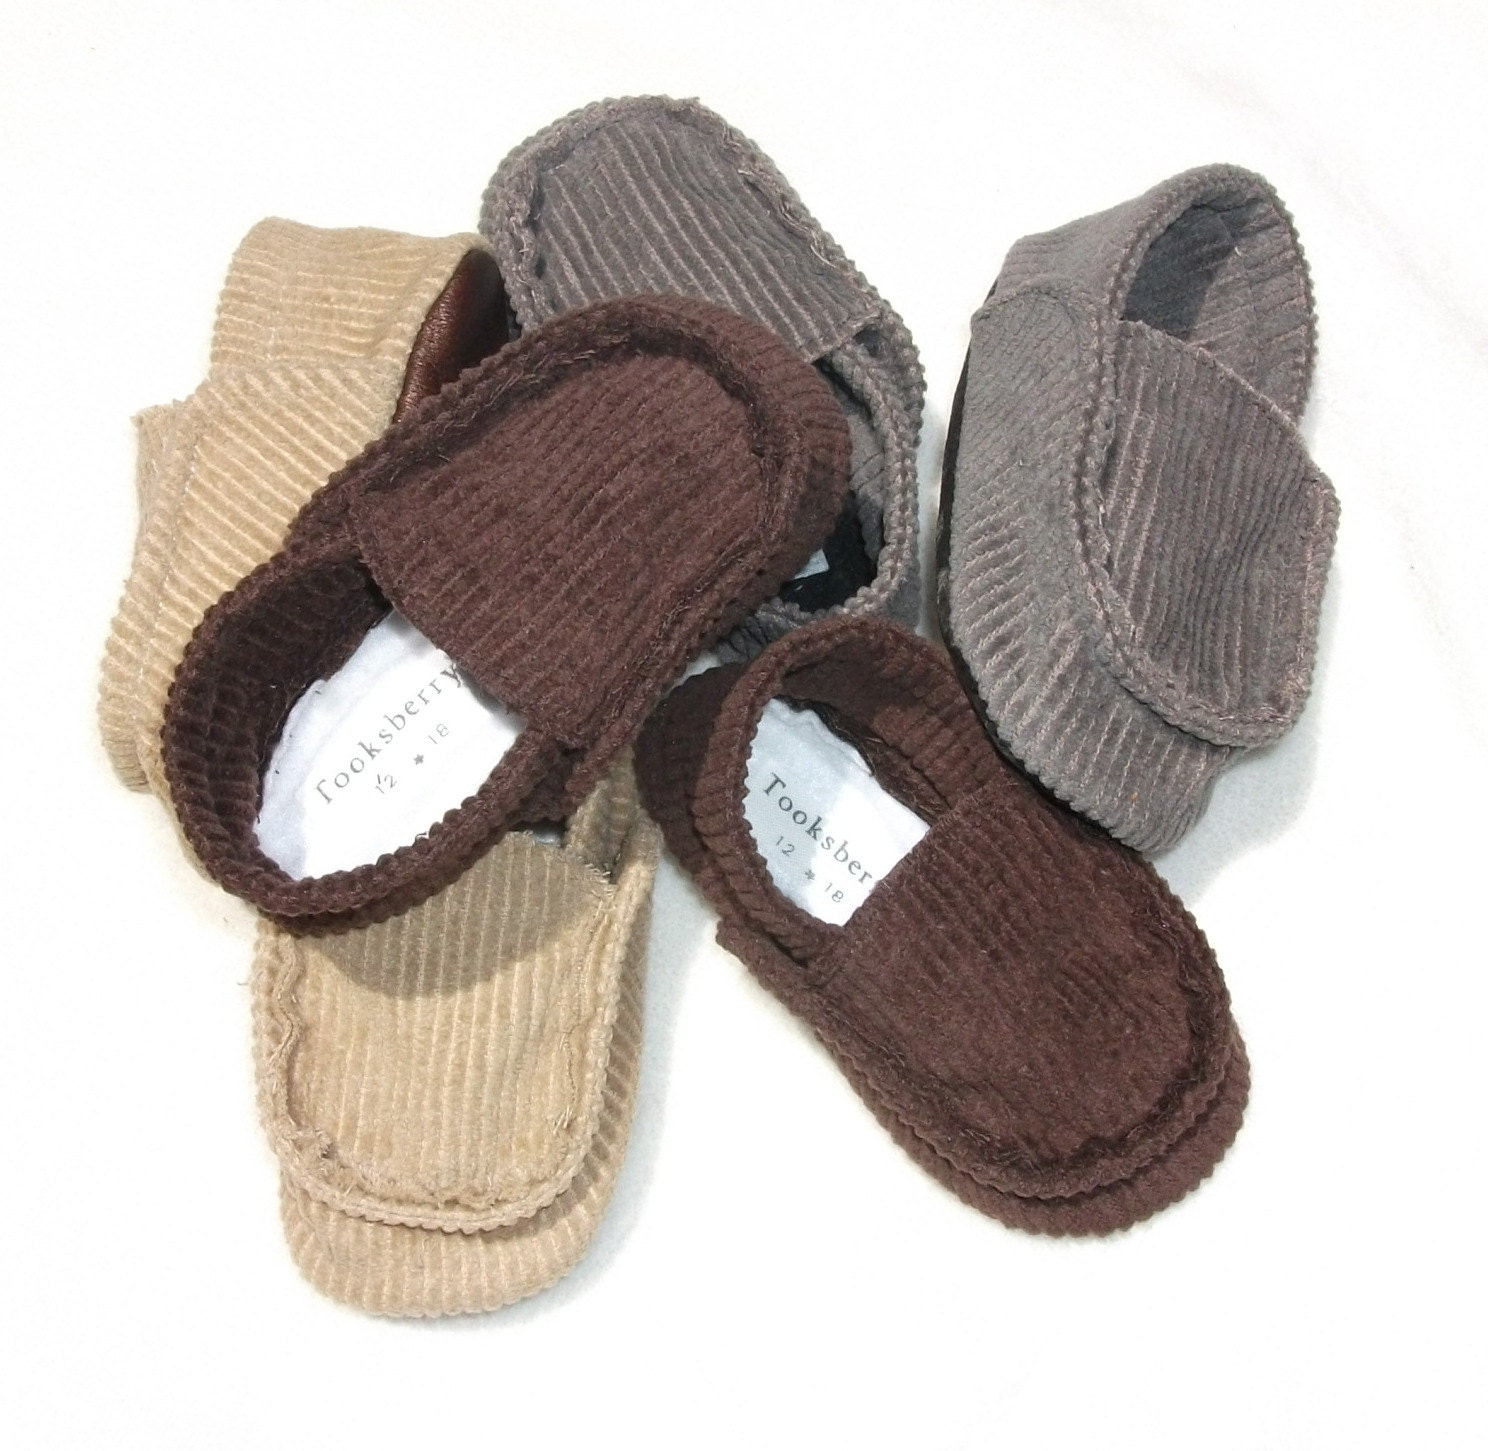 Easter Baby Boy shoes gray brown tan corduroy baby by ...